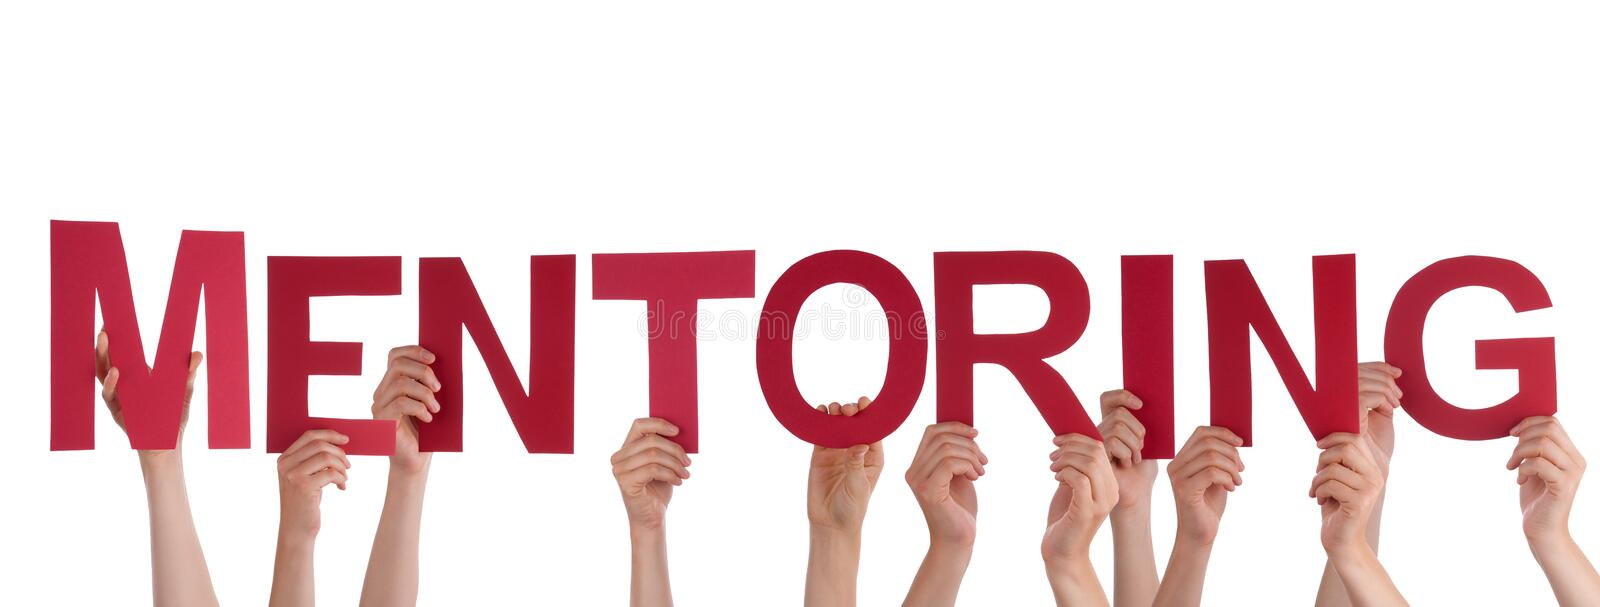 People Holding Mentoring royalty free stock photo